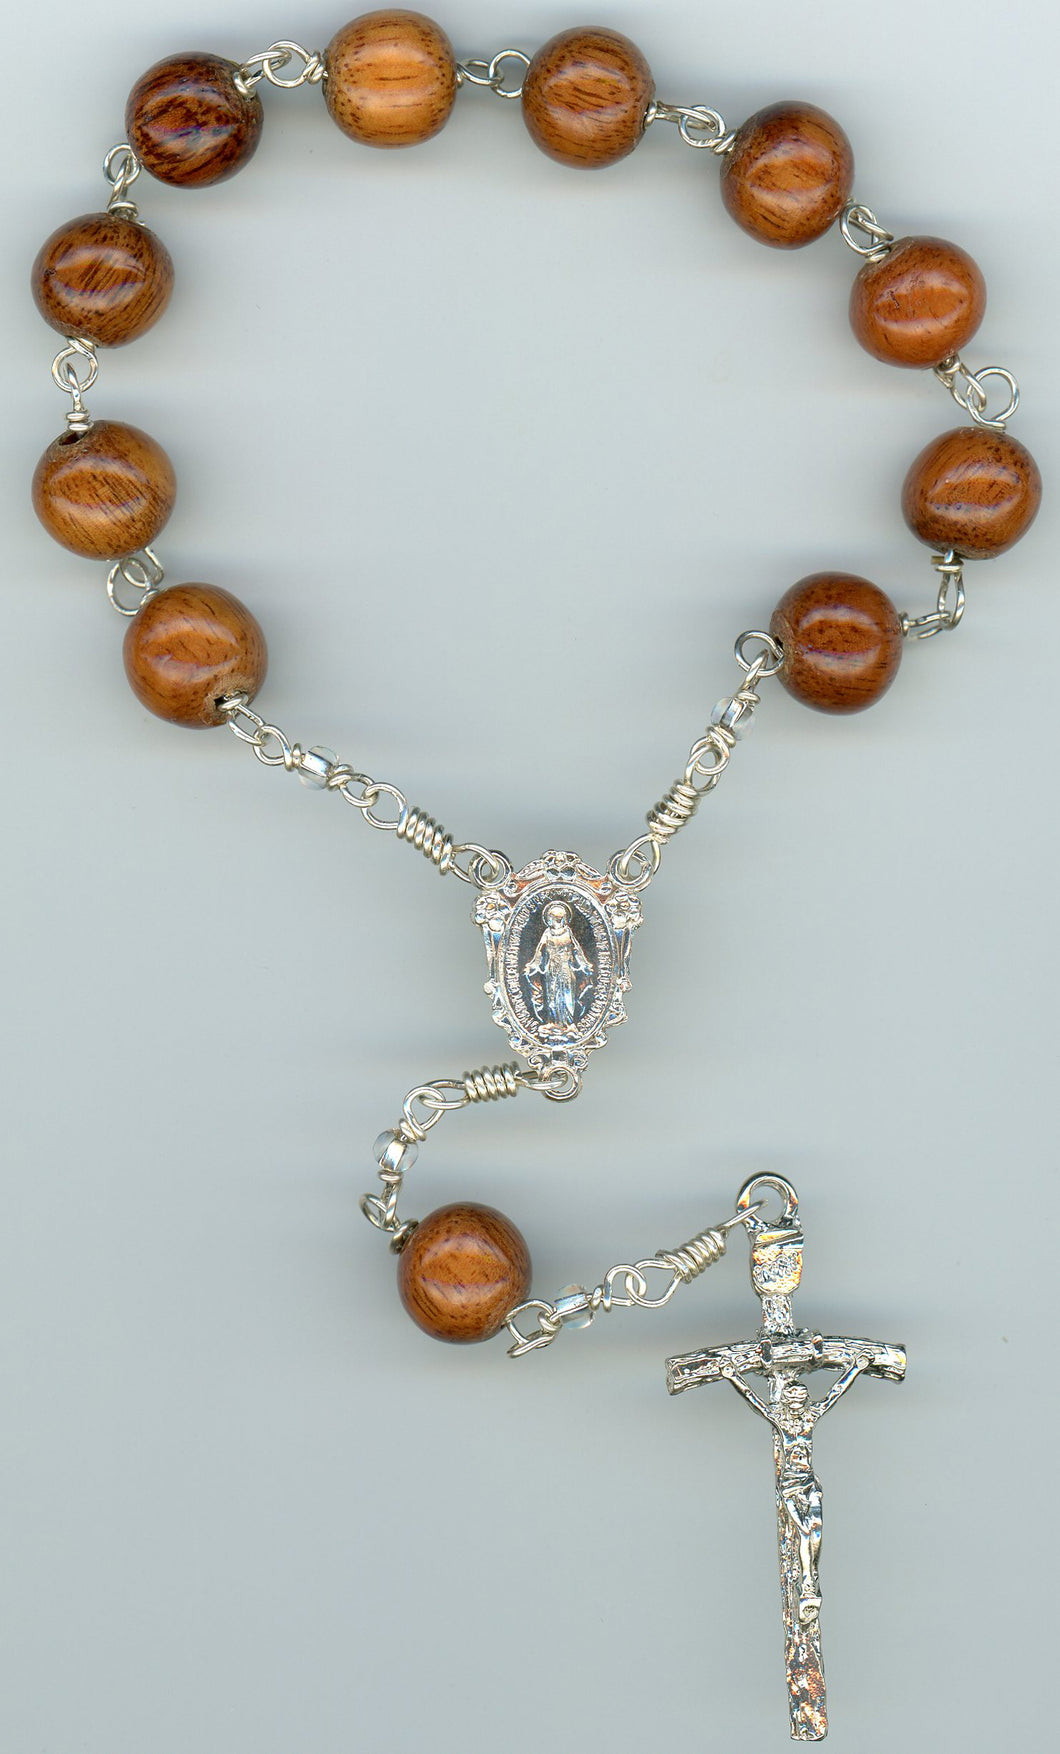 Koa Single Decade Rosary in all Argentium Sterling